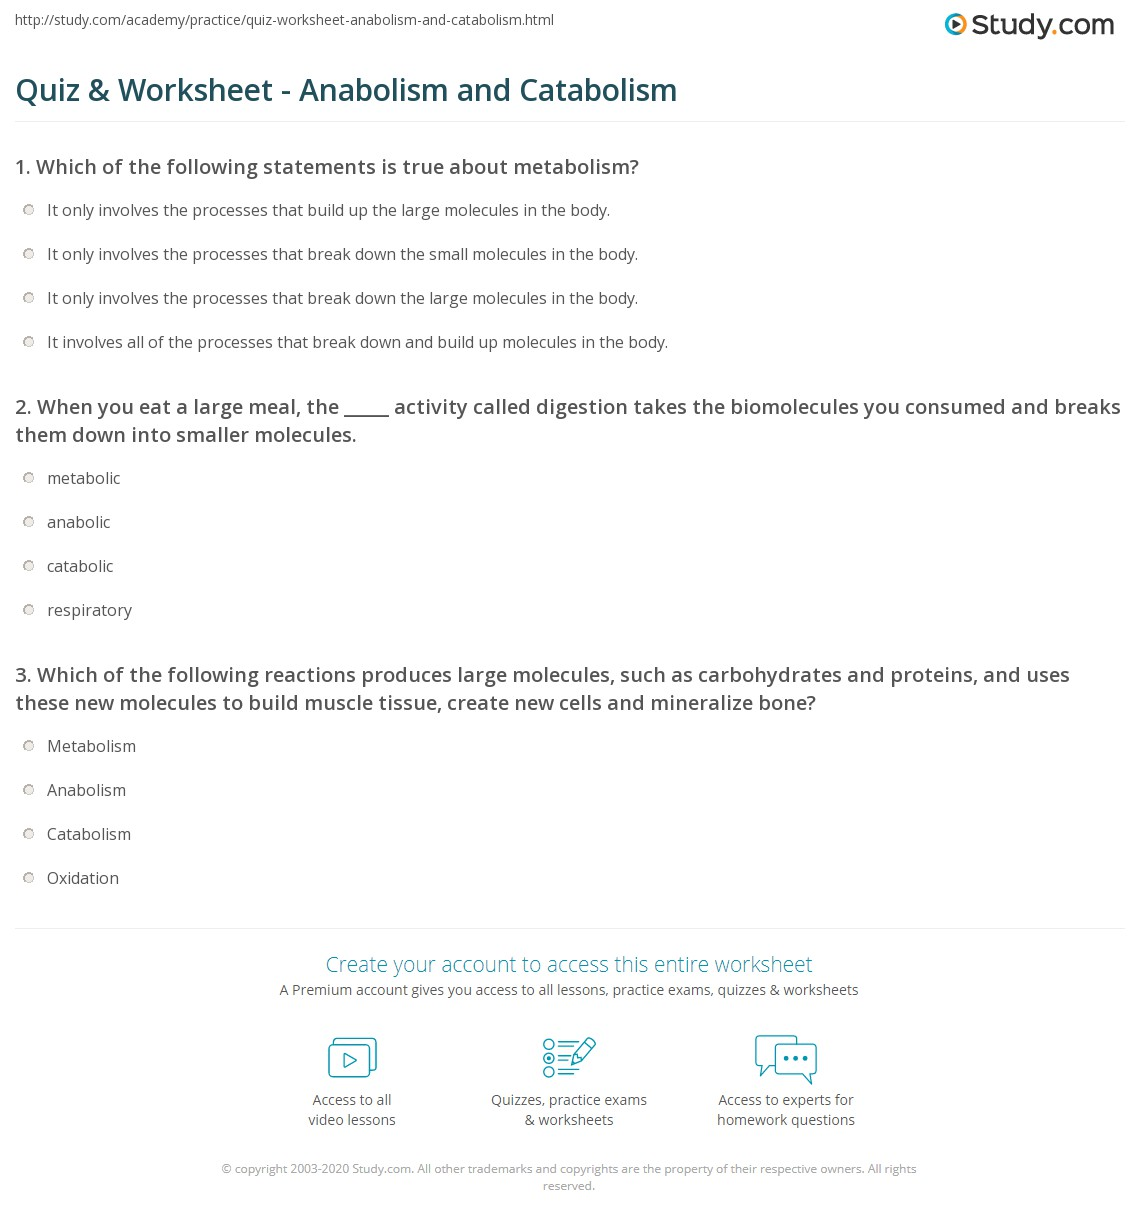 quiz worksheet anabolism and catabolism 1 140—1 317 pixels